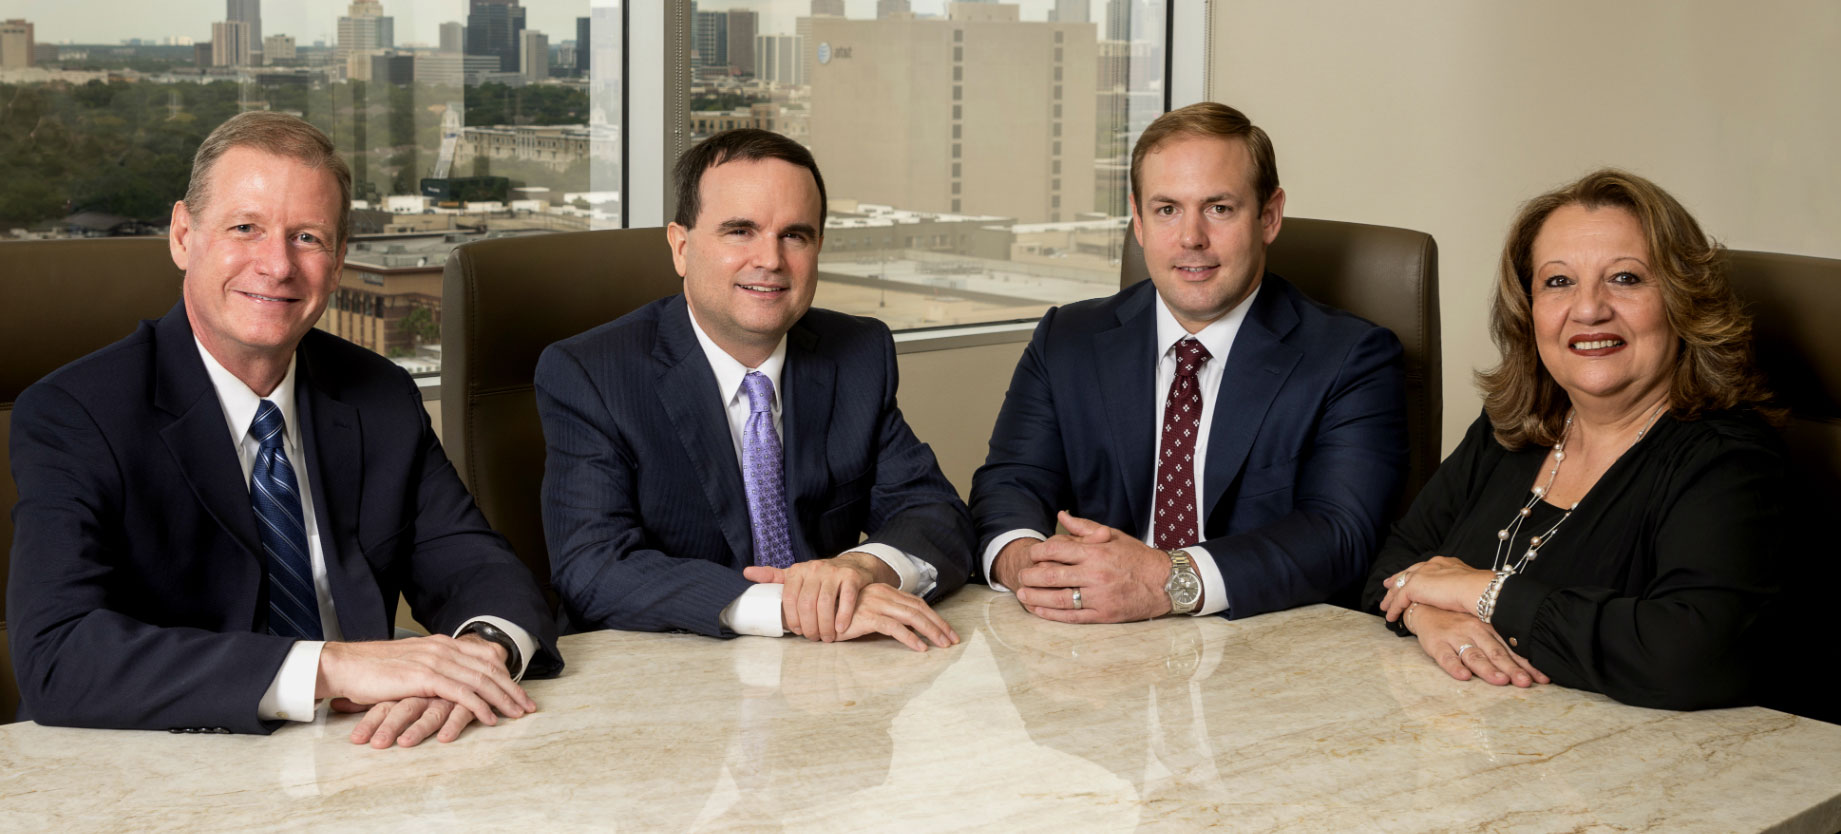 Goff-financial-financial-advisors-houston